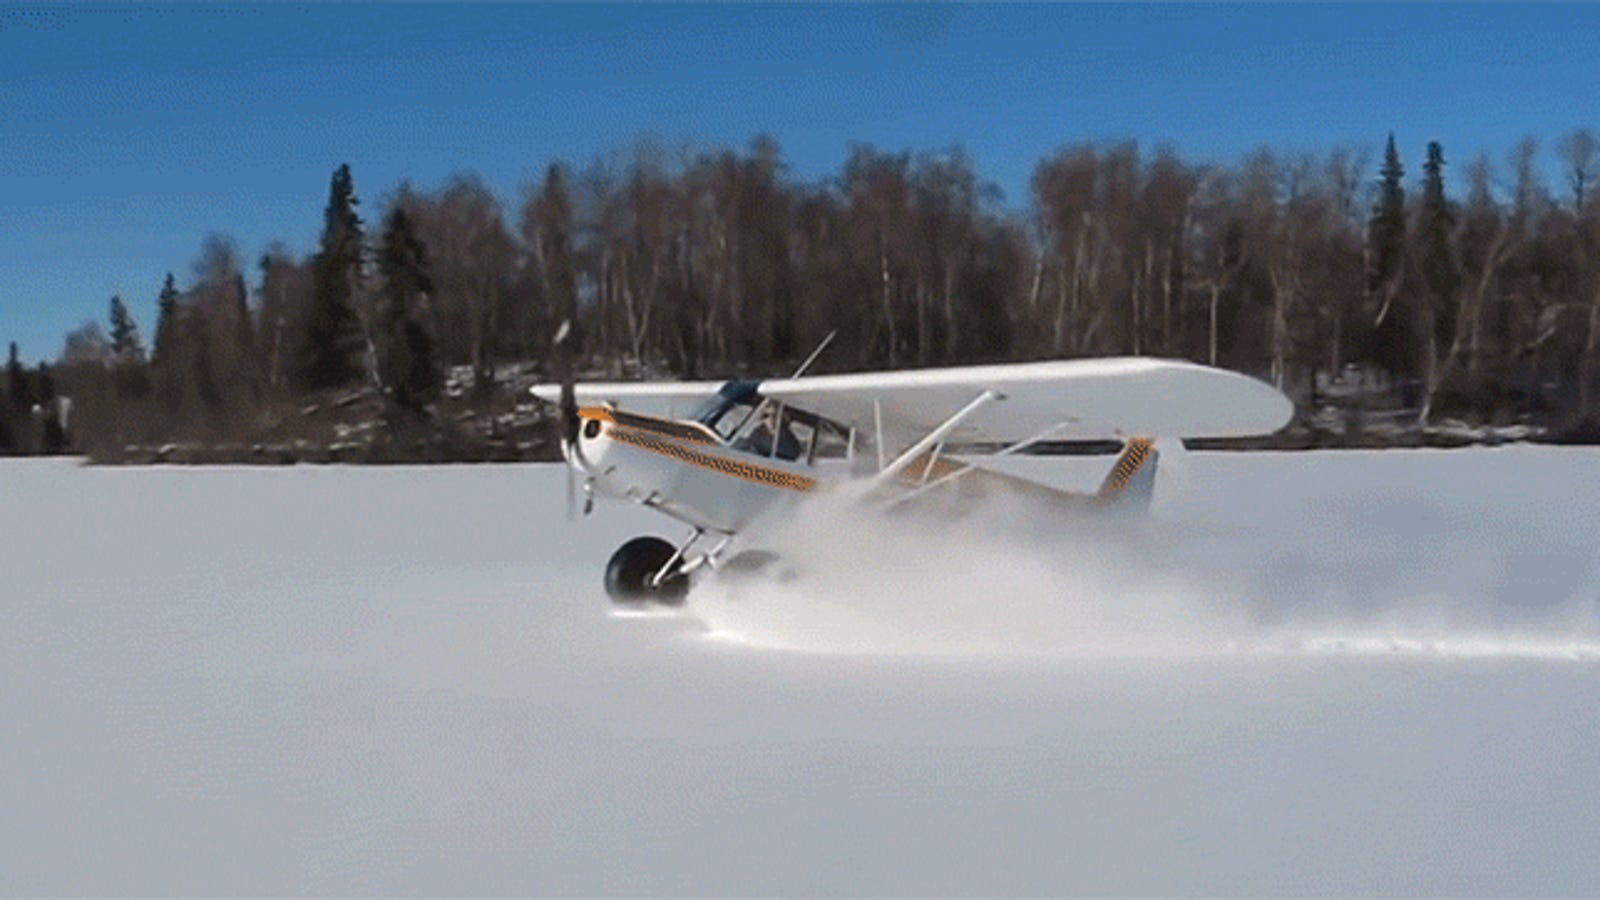 A plane landing in the snow and doing donuts is the funnest thing